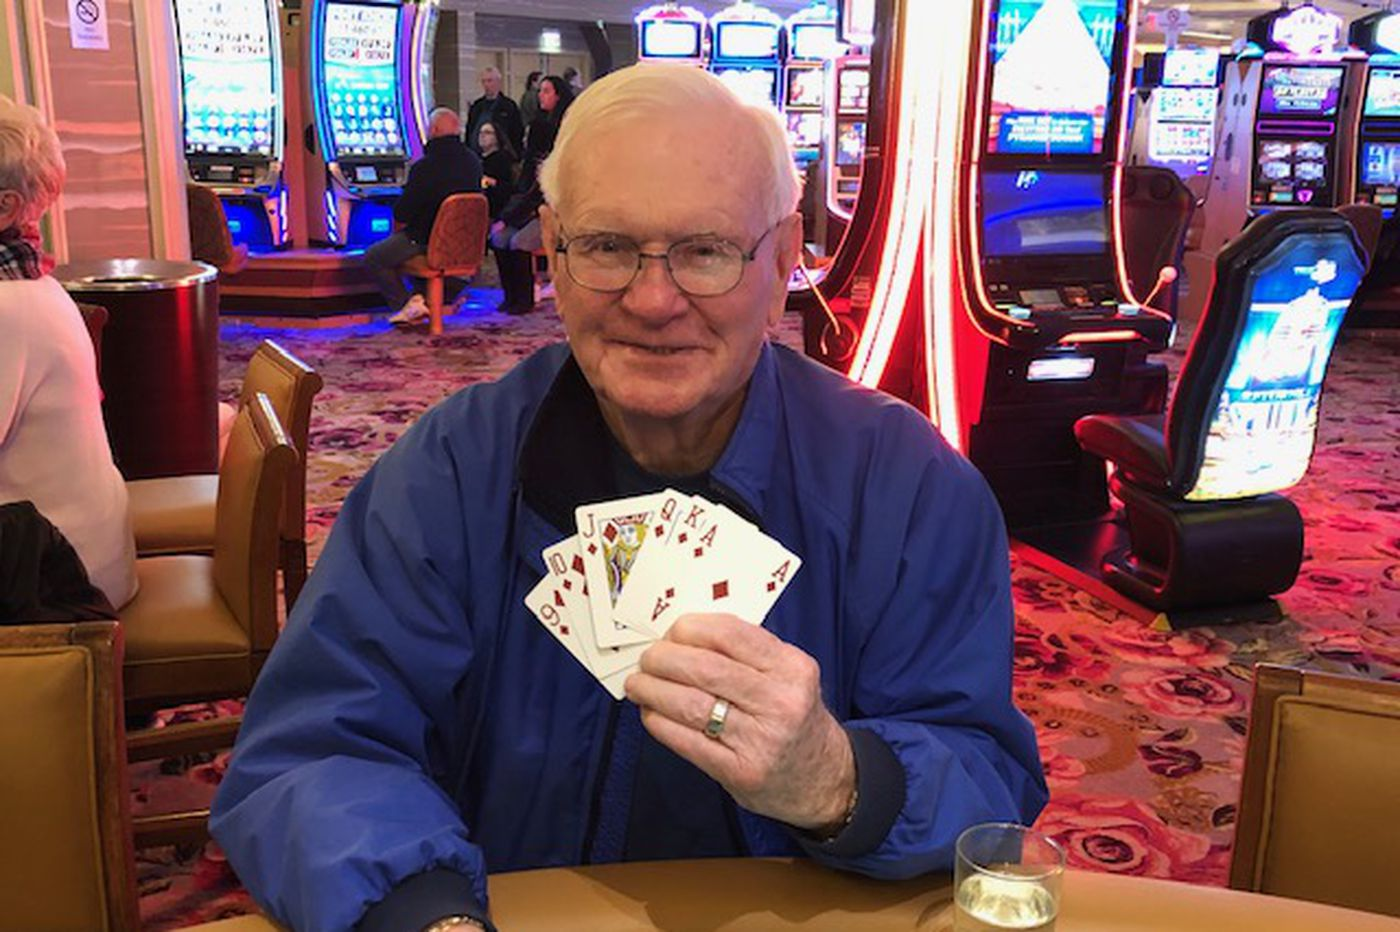 Holiday luck: South Jersey man wins $1 million on $5 bet at Borgata